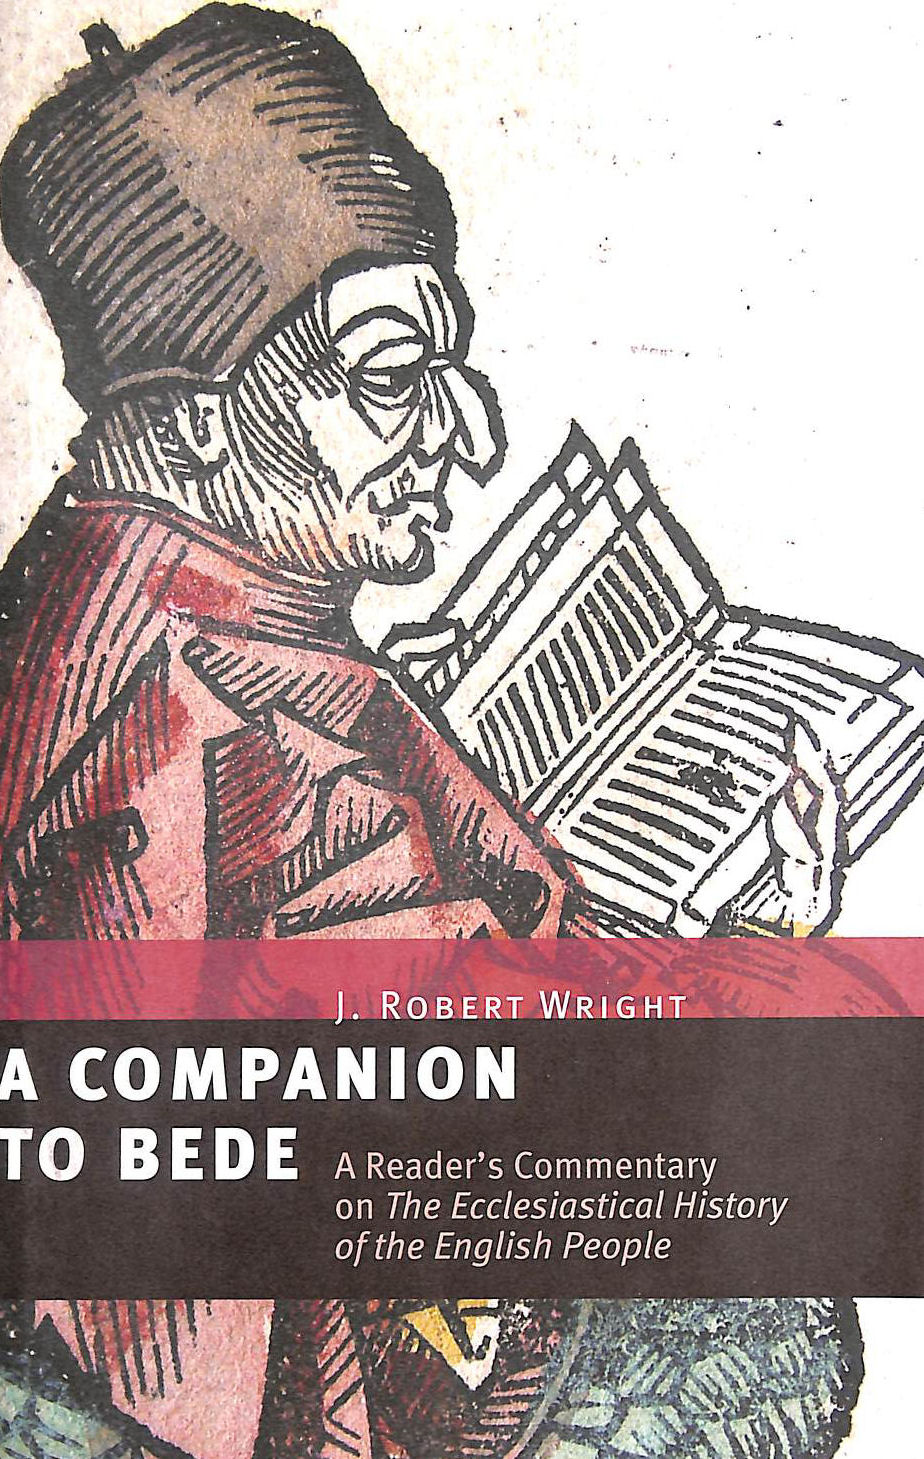 Image for A Companion to Bede: A Reader's Commentary on the Ecclesiastical History of the English Peple